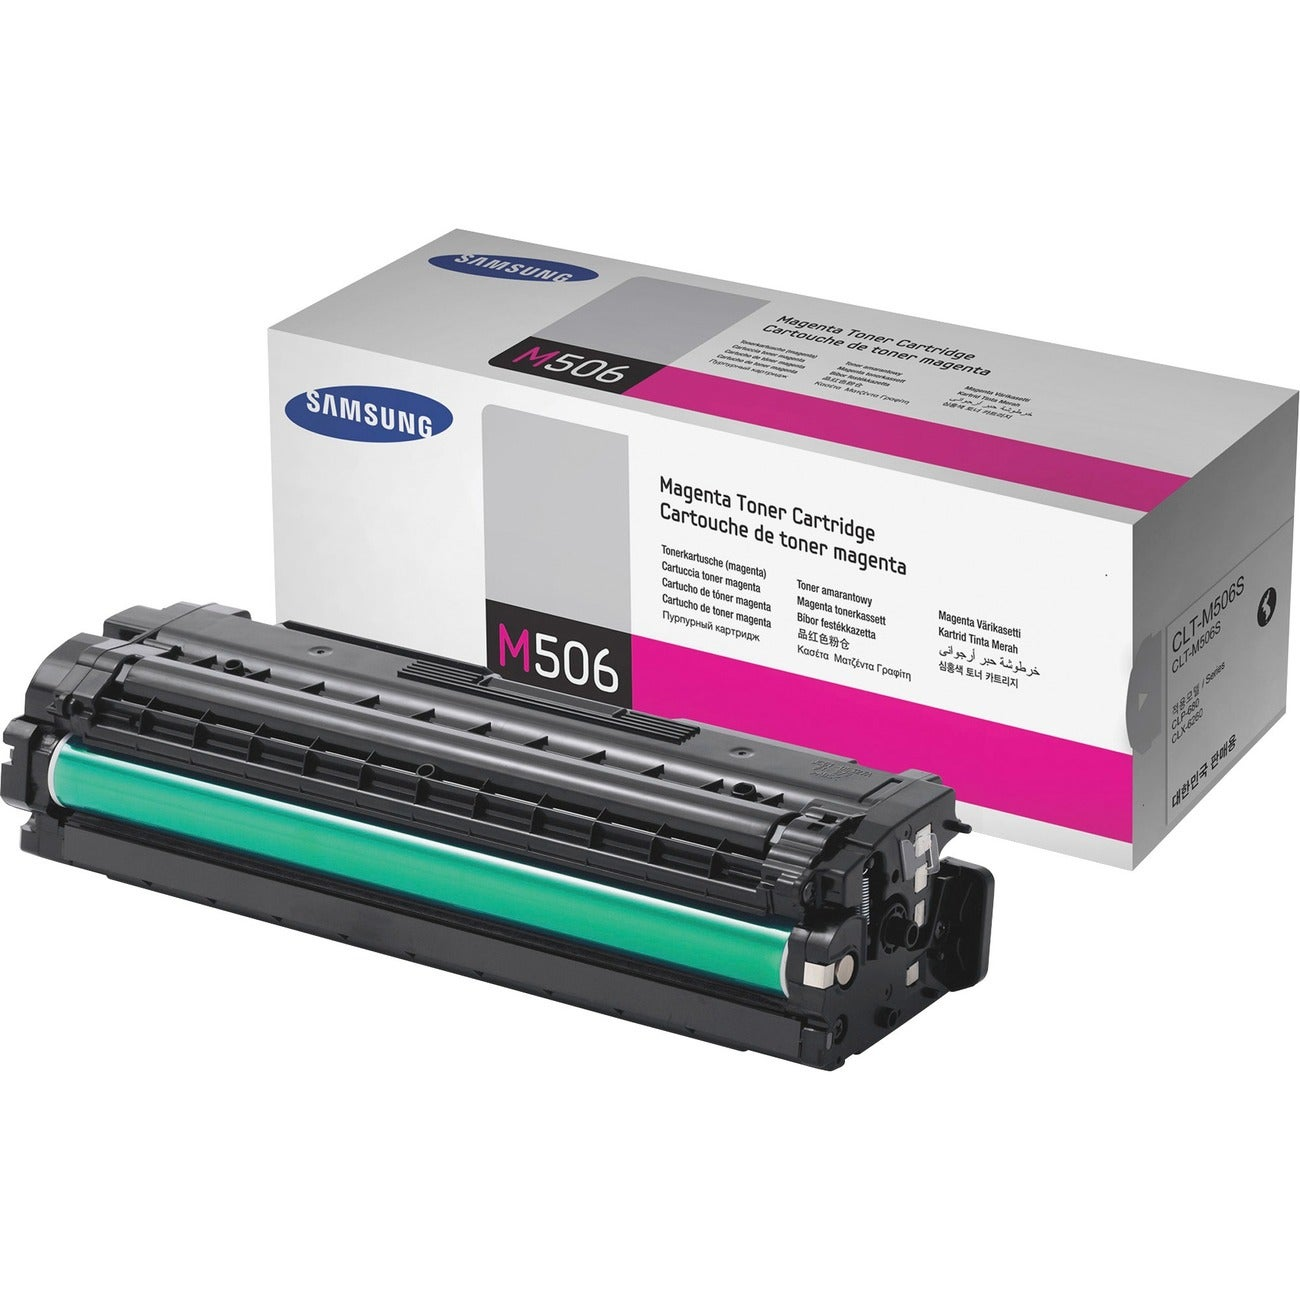 Samsung CLT-M506S Red/ Magenta Toner Cartridge